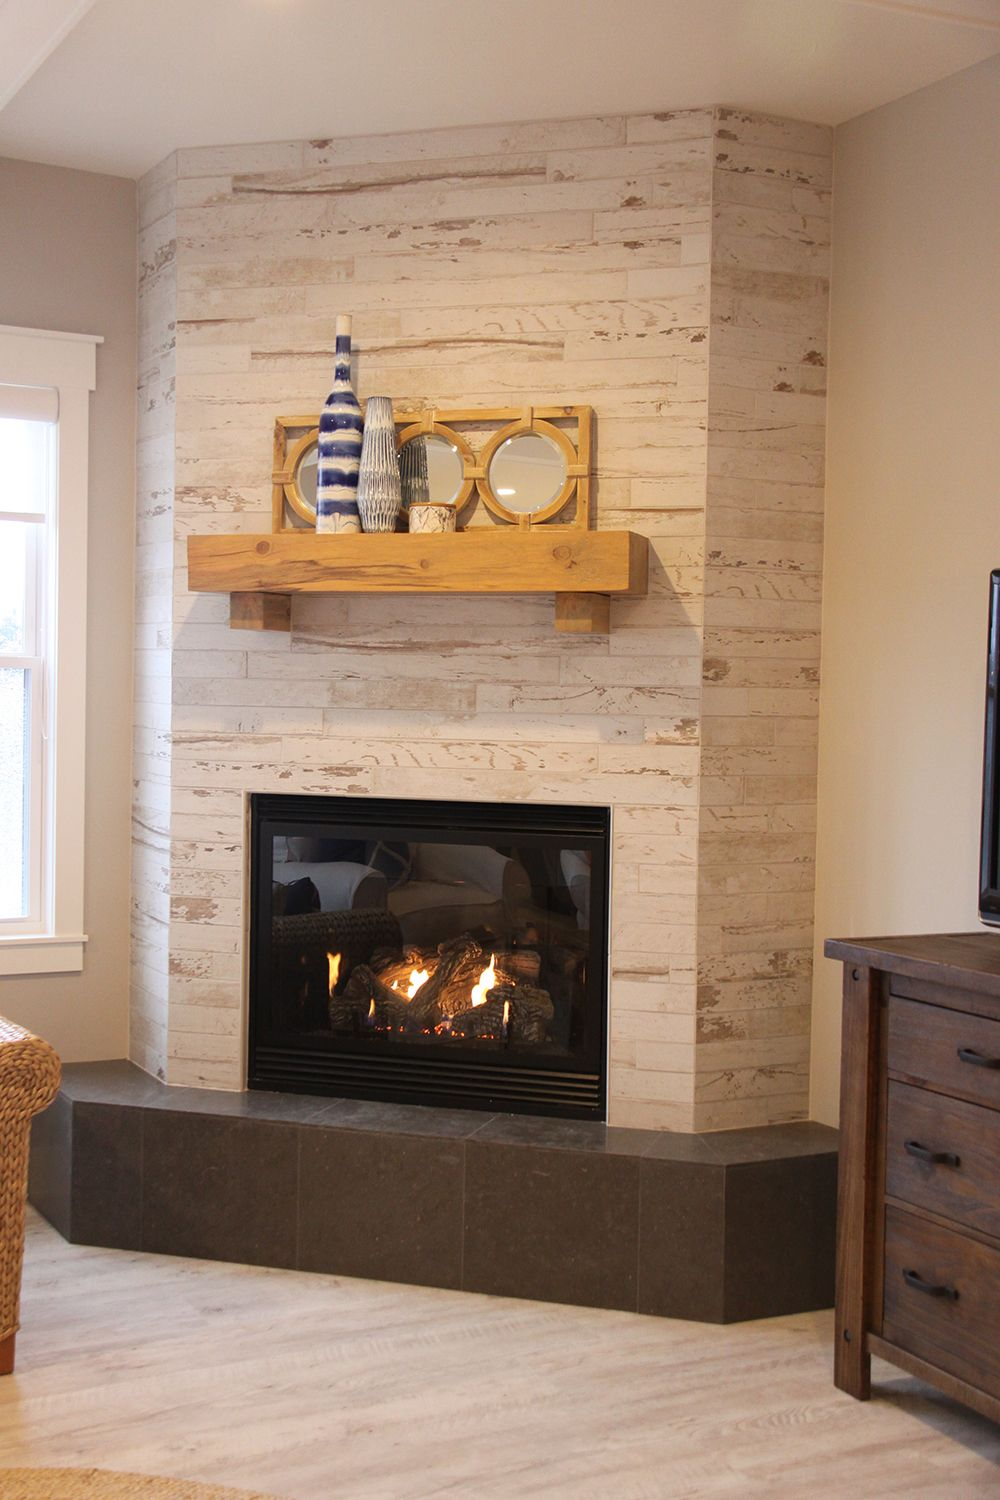 Corner Gas Fireplace Design Ideas corner gas fireplace ideas decorating new teak furnitures corner gas fireplace mantels Wood Look Ceramic Tile Corner Fireplace